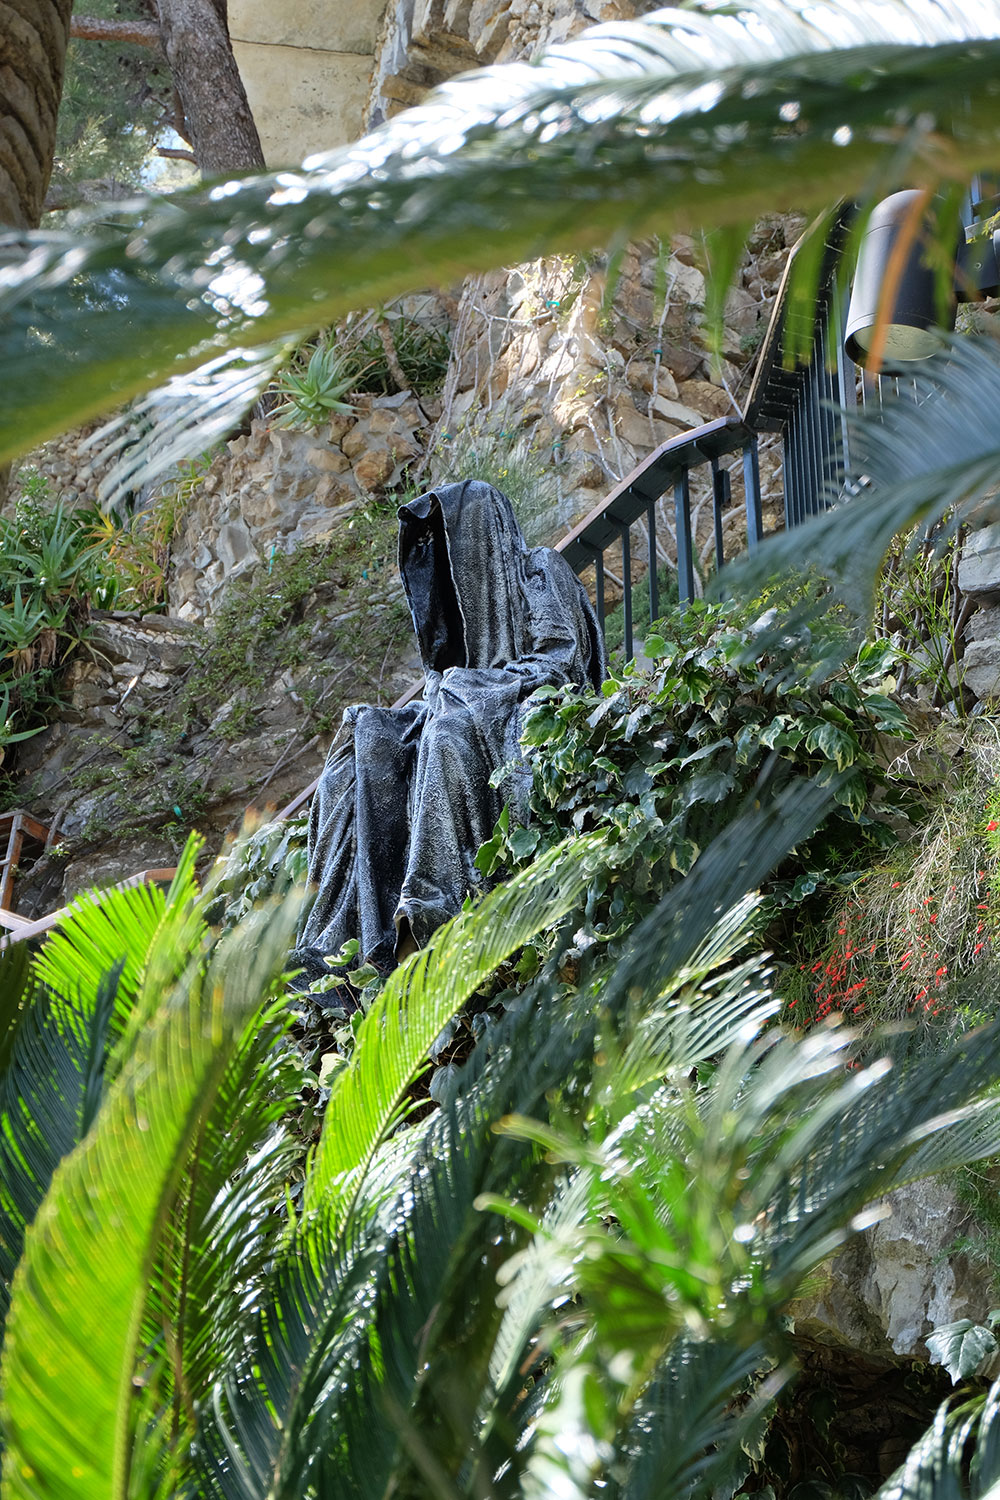 guardians-of-time-manfred-kili-kielnhofer-contemporary-fine-art-sculpture-tour-italy-genova-rapallo-portofino-see-cost-2426